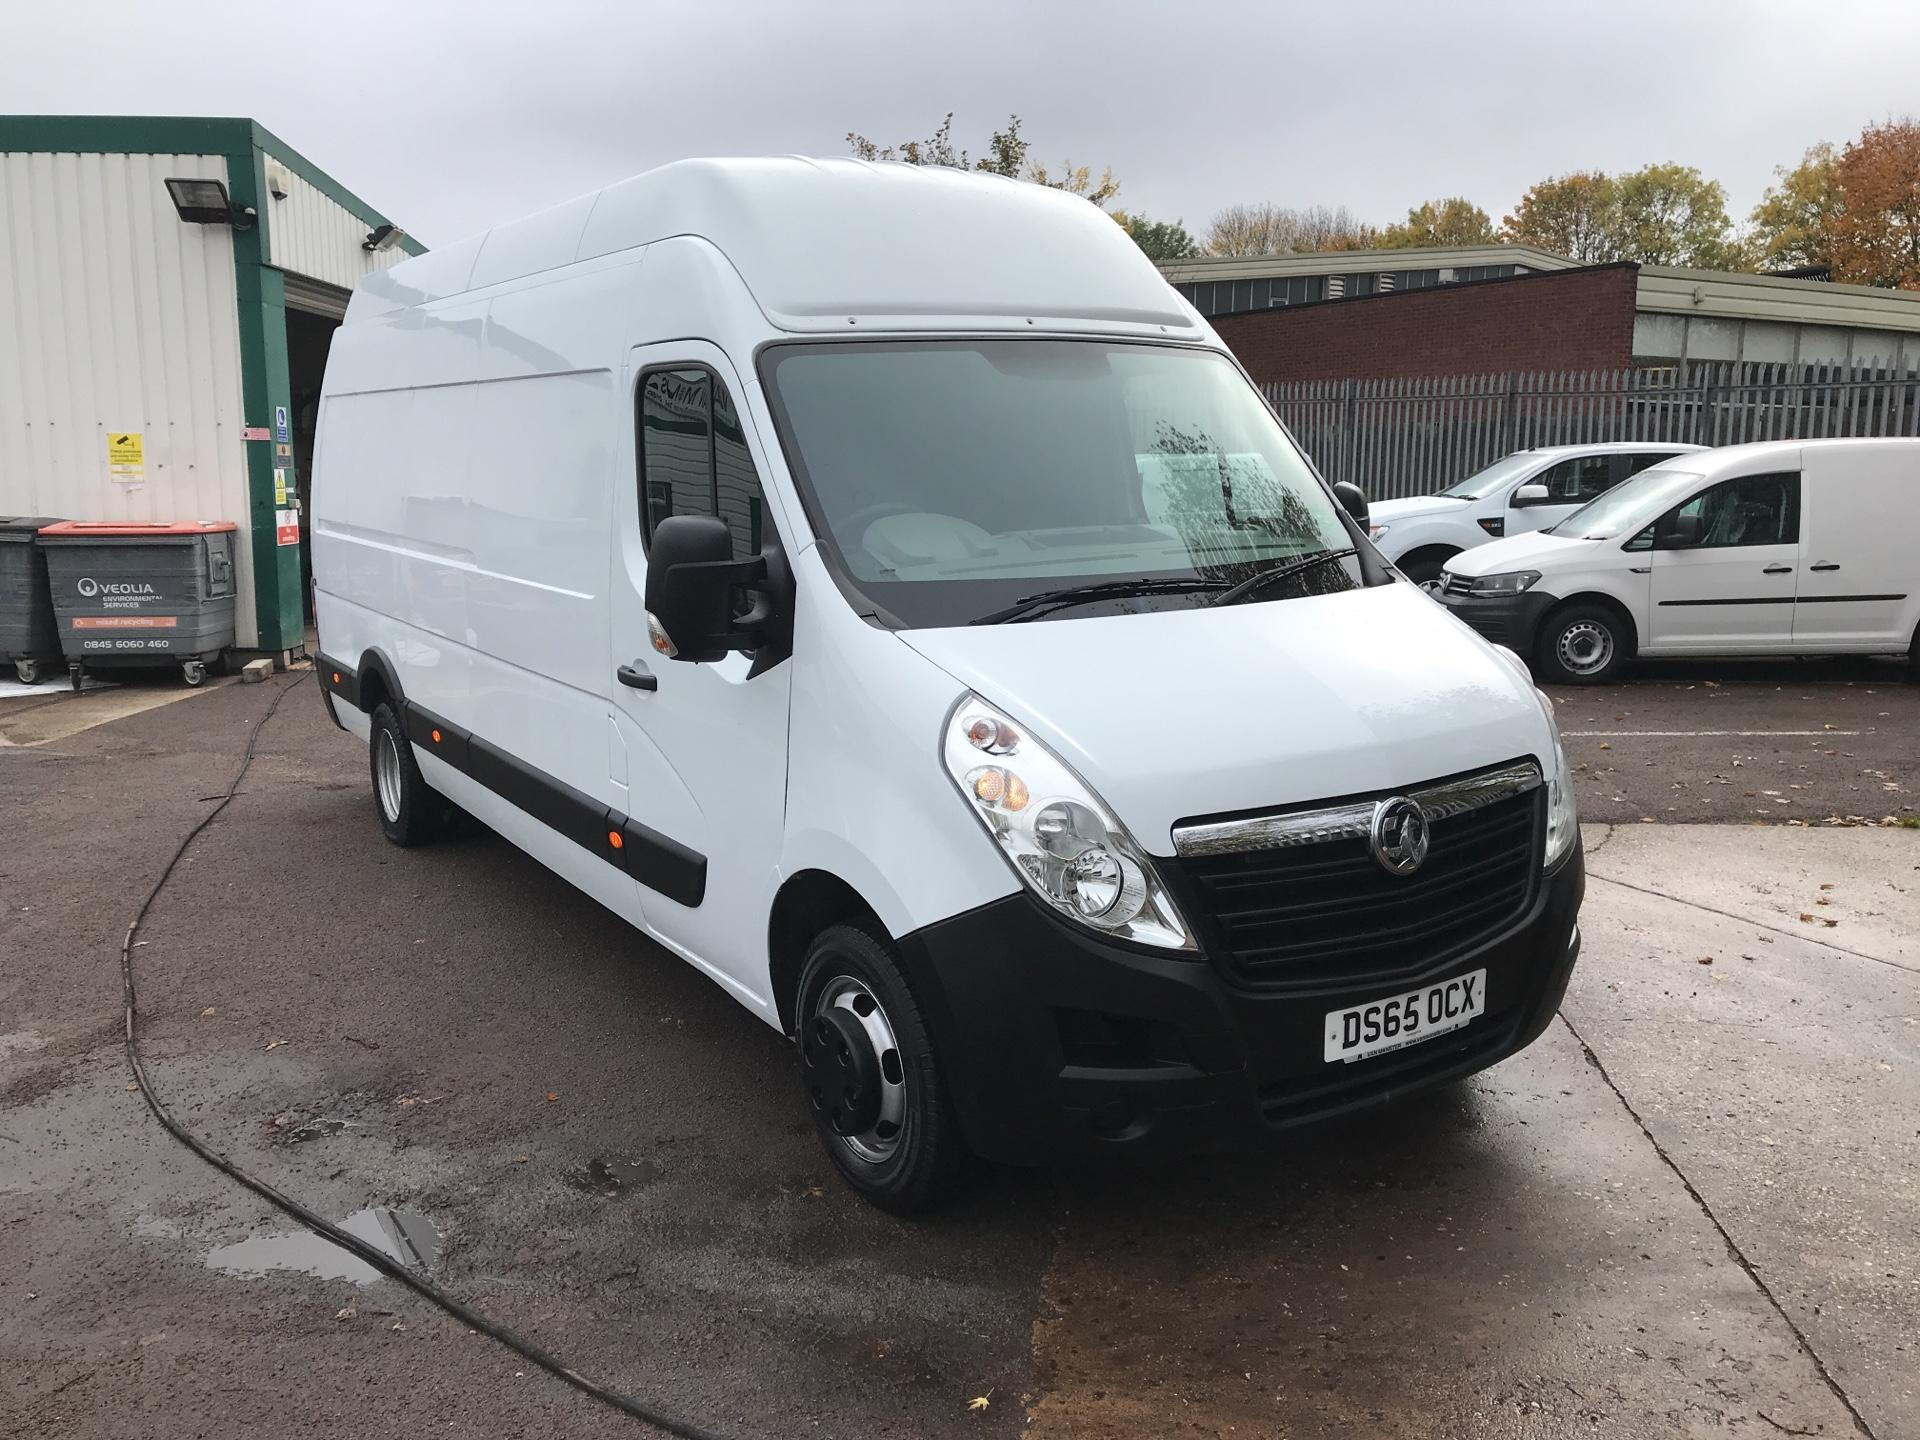 2015 Vauxhall Movano 2.3 Cdti L4 H3 Van 125Ps EURO 5  (DS65OCX)